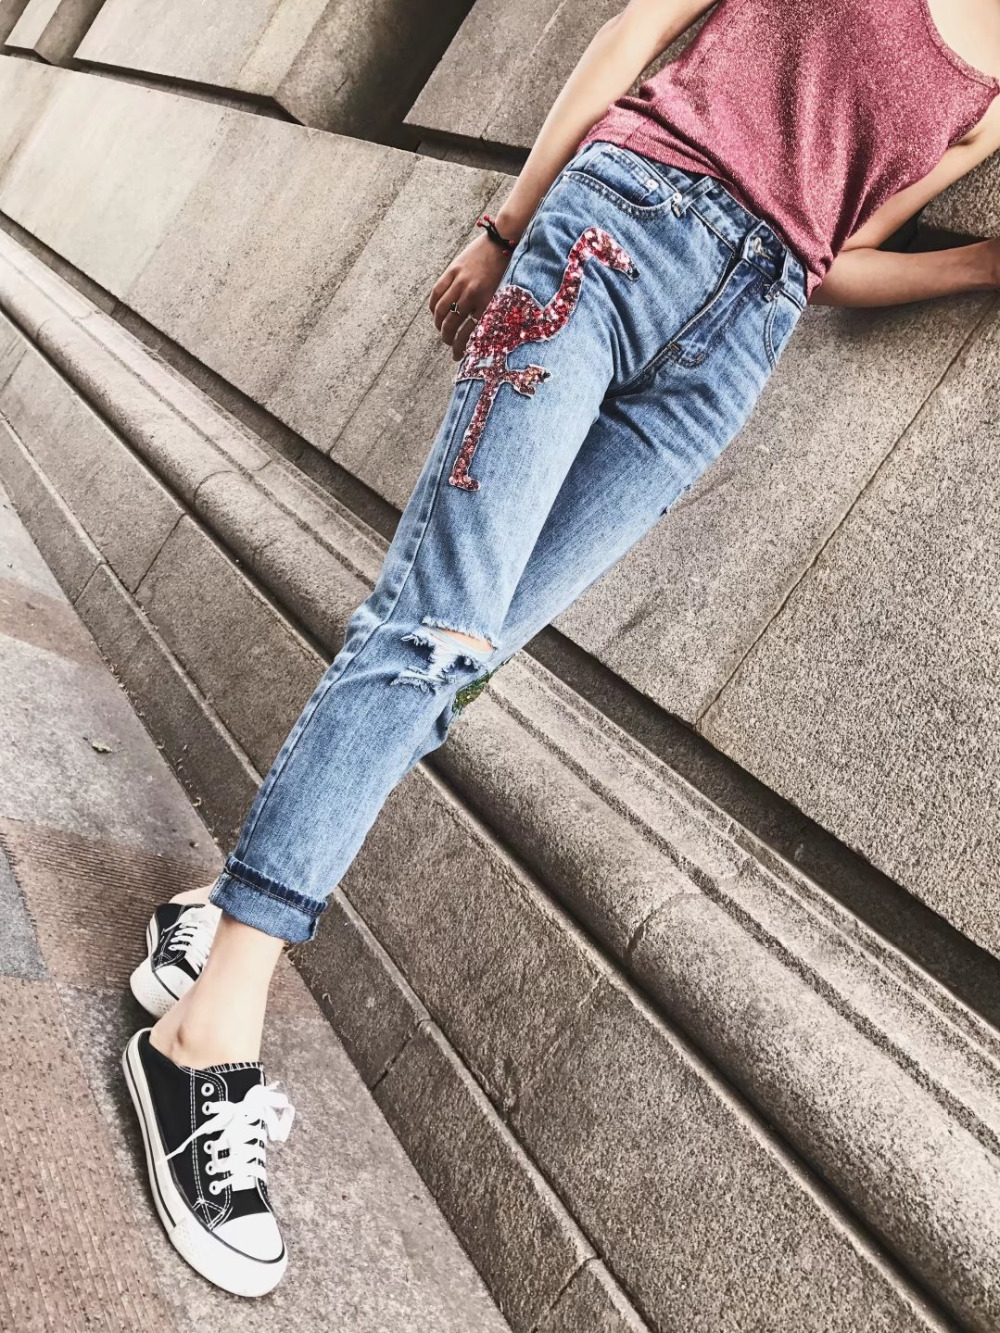 2017 Women Jeans with Flamingo Sequined Ripped Knee Hole High Waist Loose Straight Pants Vintage Denim Ankle-length Trousers summer casual women jeans high waist big hole ankle length ripped loose straight pants women denim trousers edge curl vintage